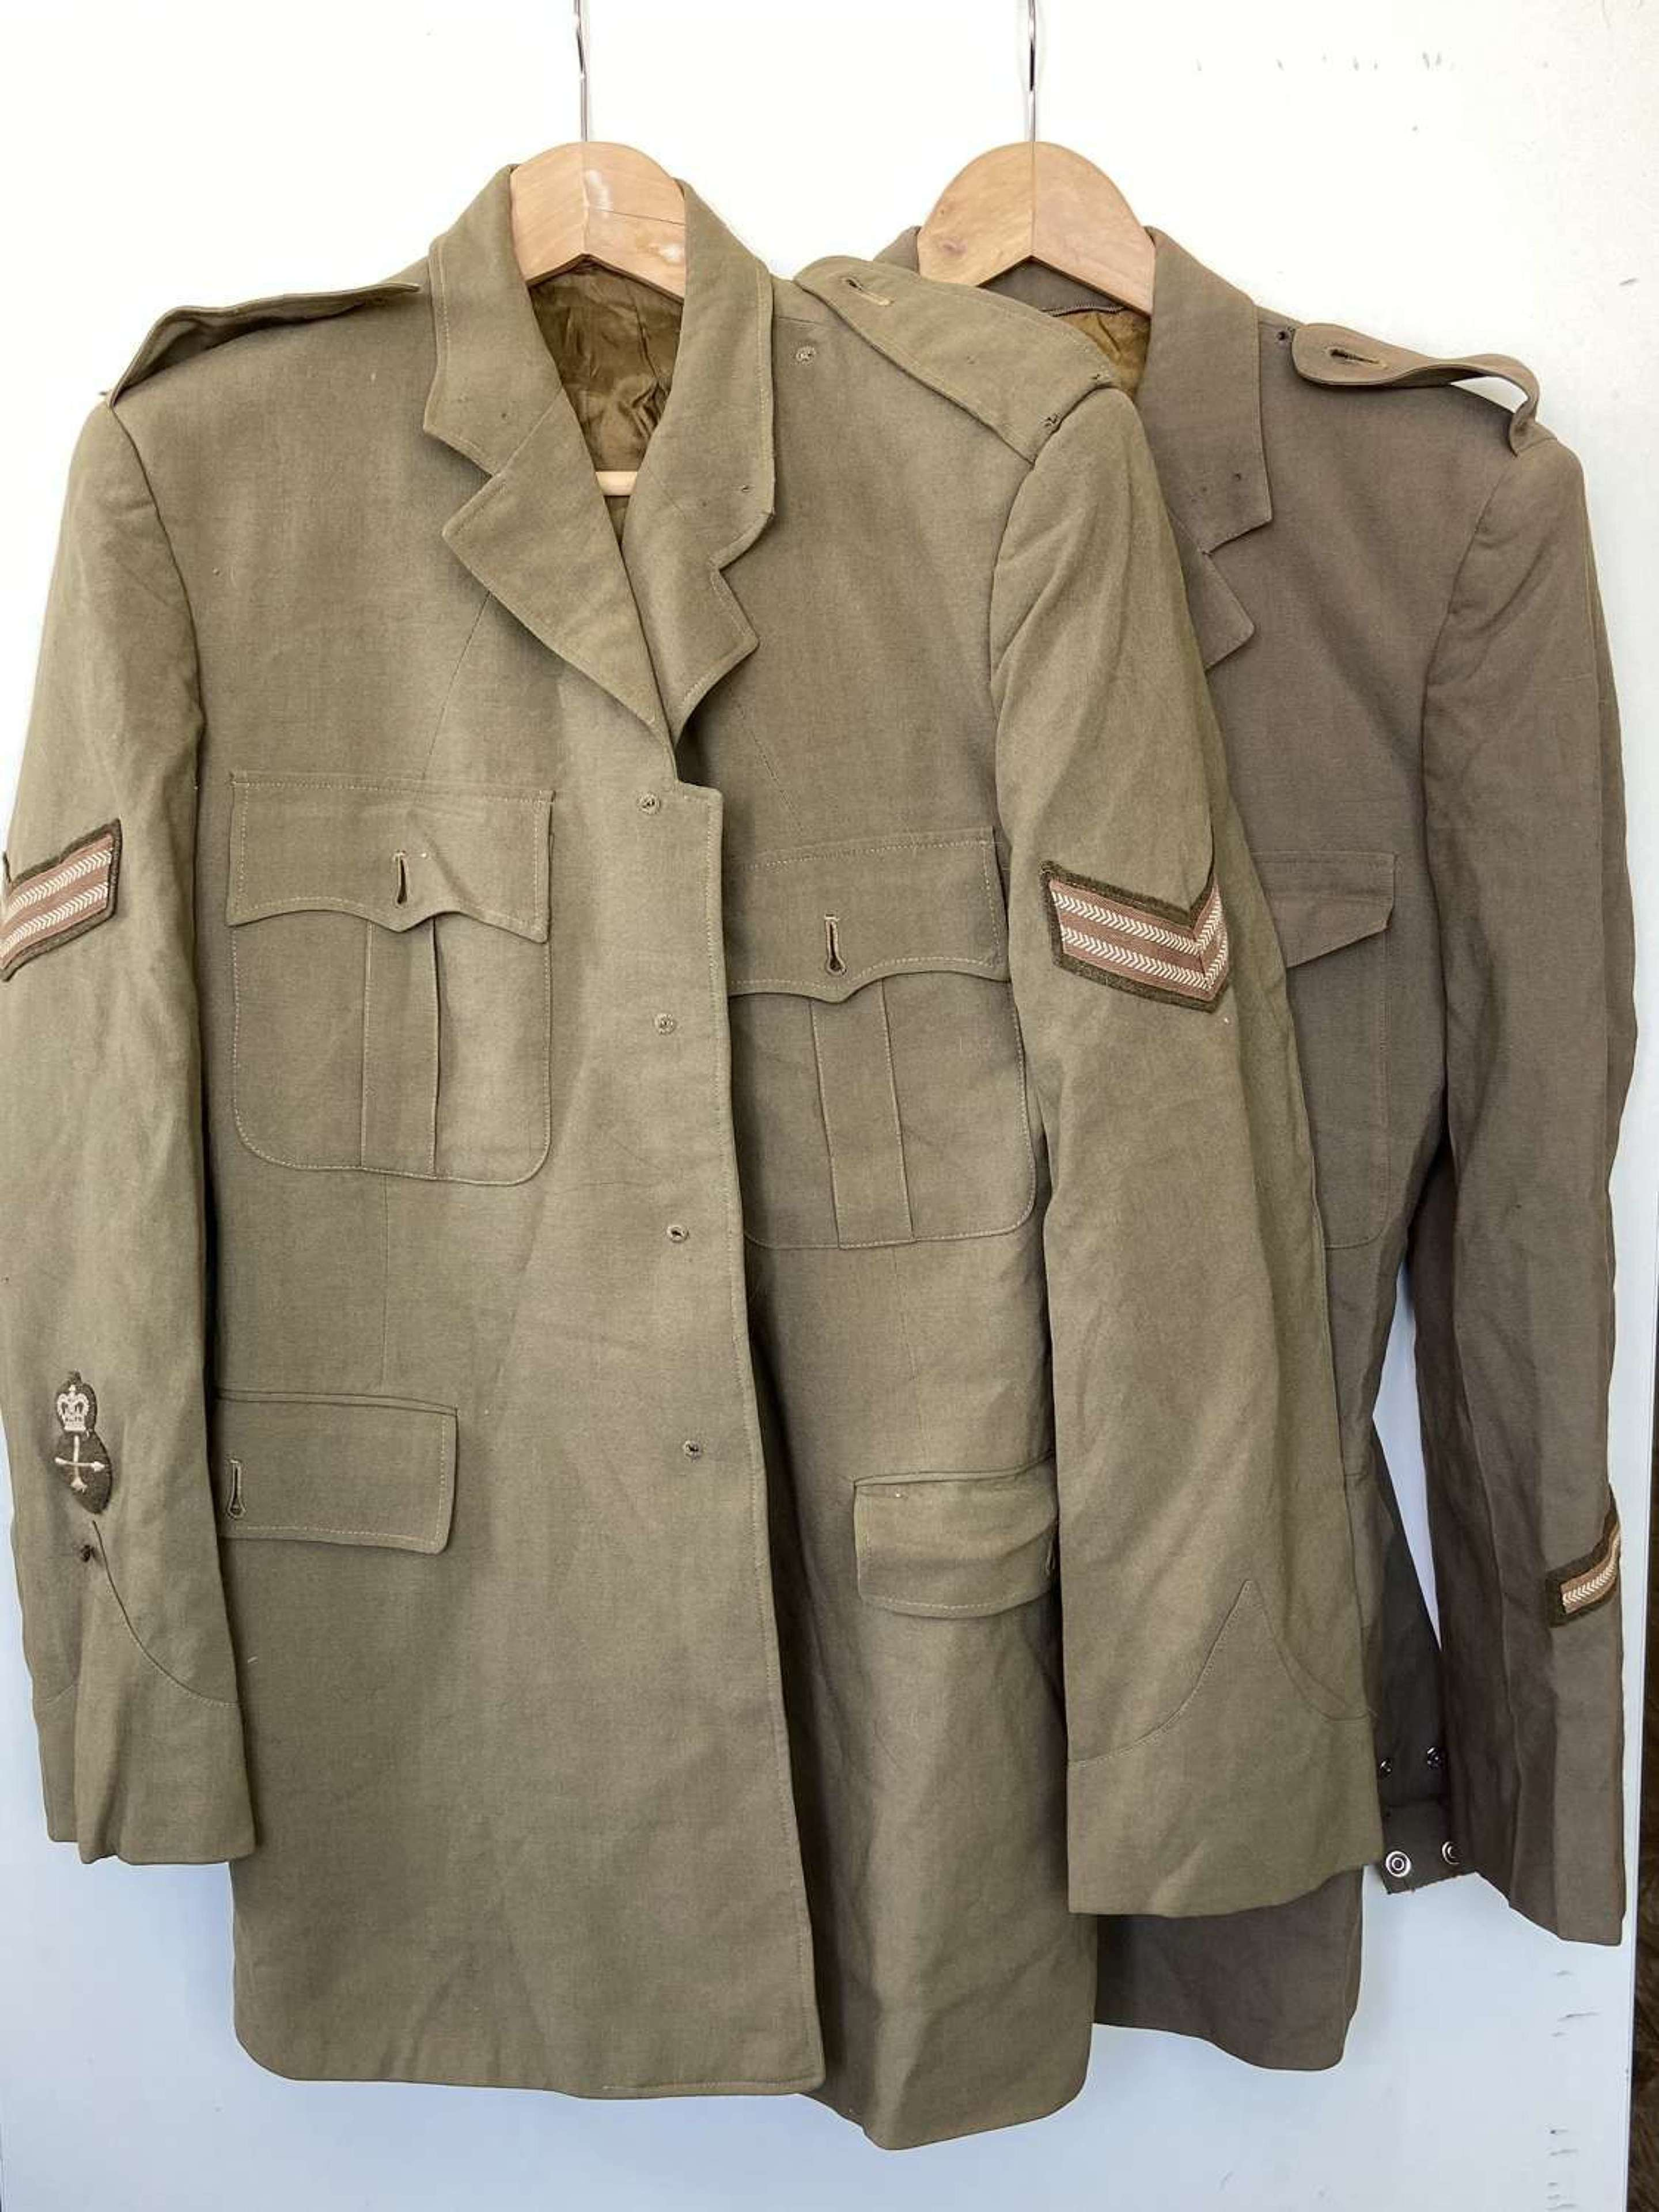 Pair of 1962 & 1954 Canadian Army Medical Summer Tunics